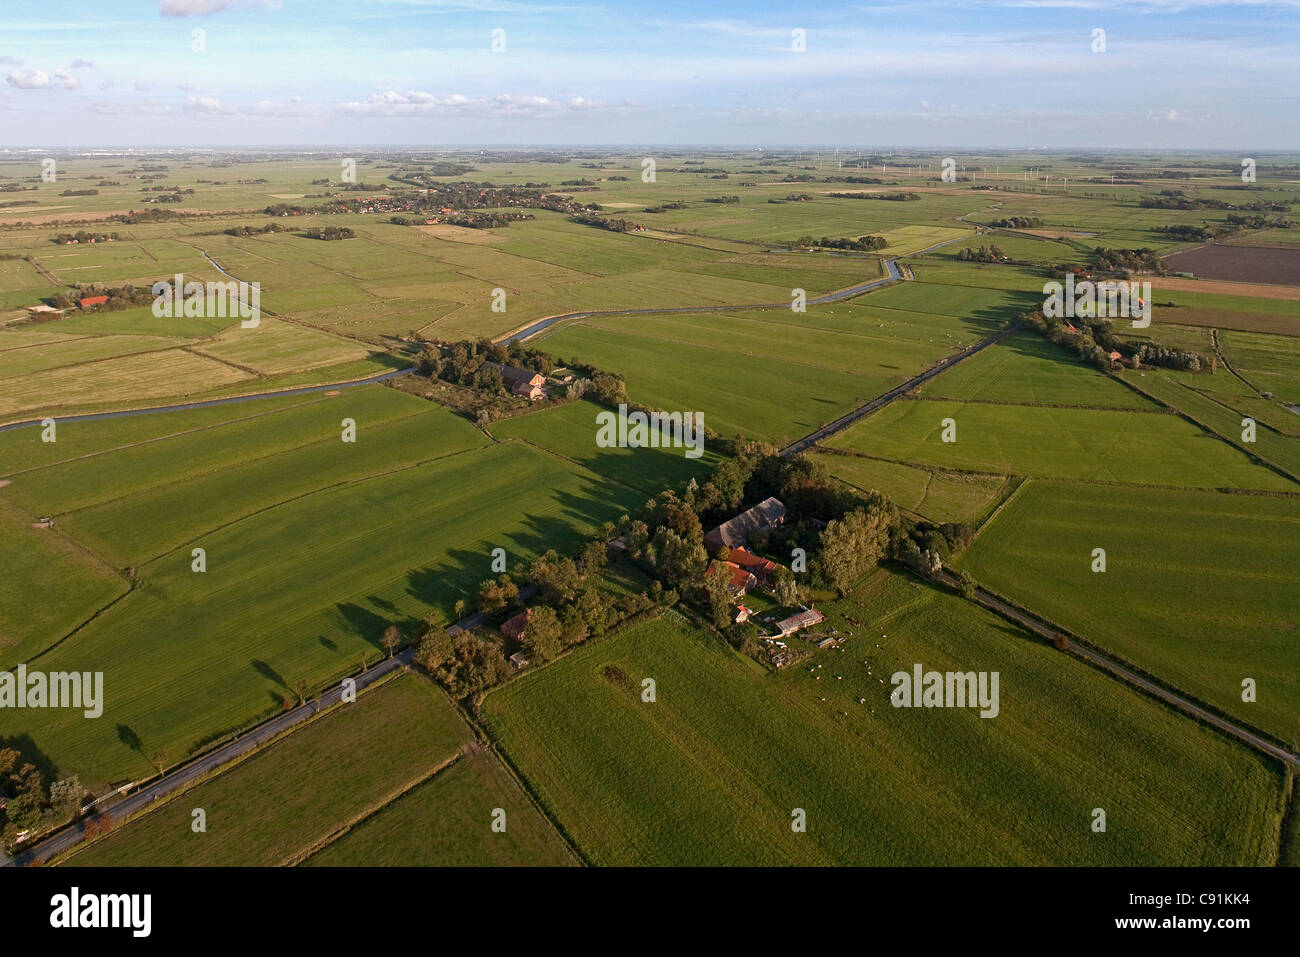 aerial view of meadows, farms and farmland, near Cuxhaven, Lower Saxony, Germany - Stock Image